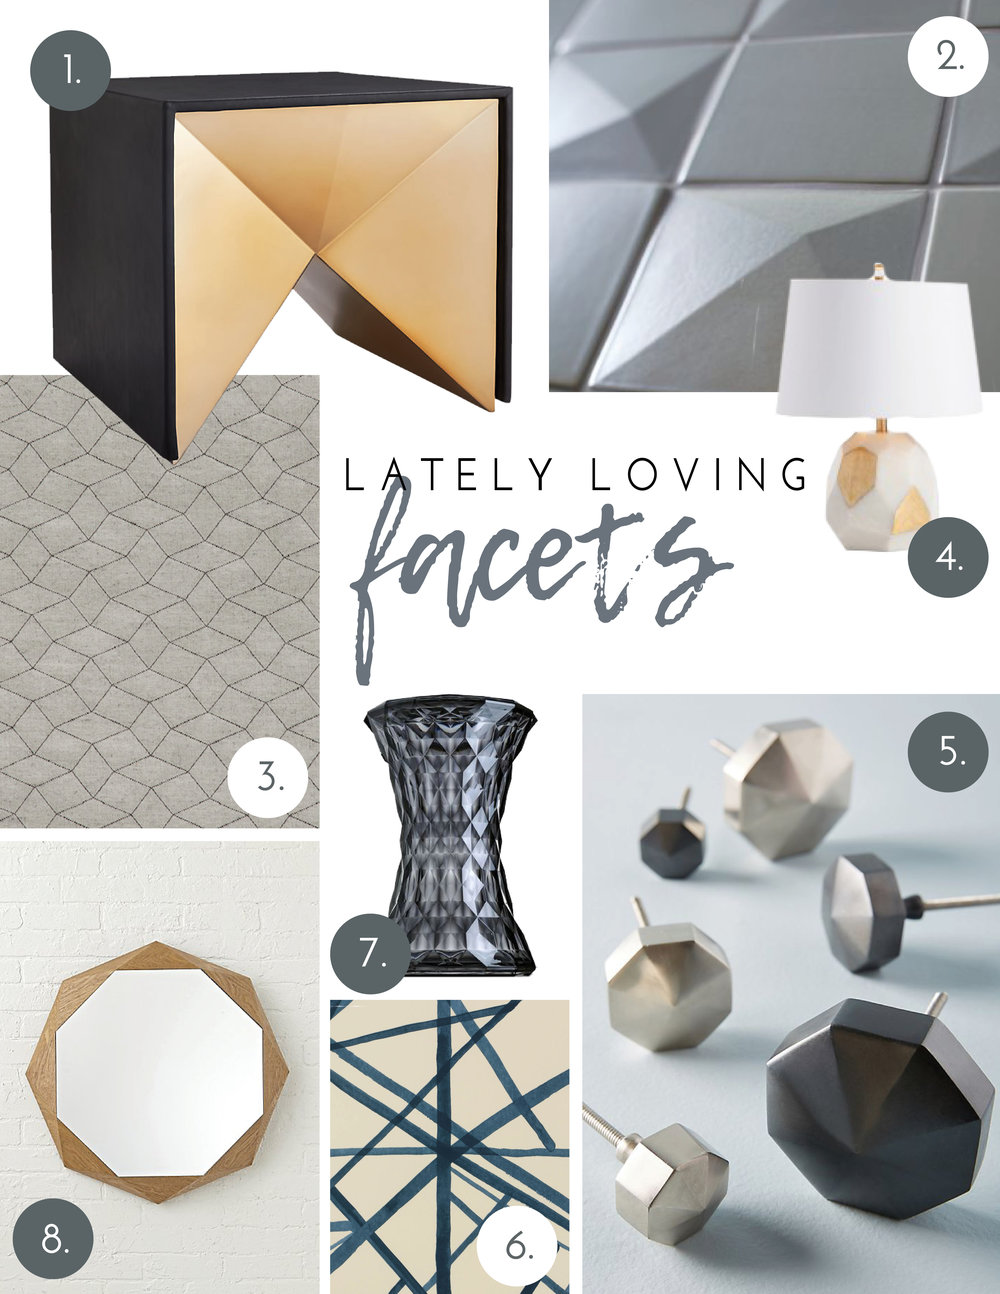 Nyla Free Designs, Calgary Interior Designer, Calgary Interior Design, Facets, Lately Loving, Blog